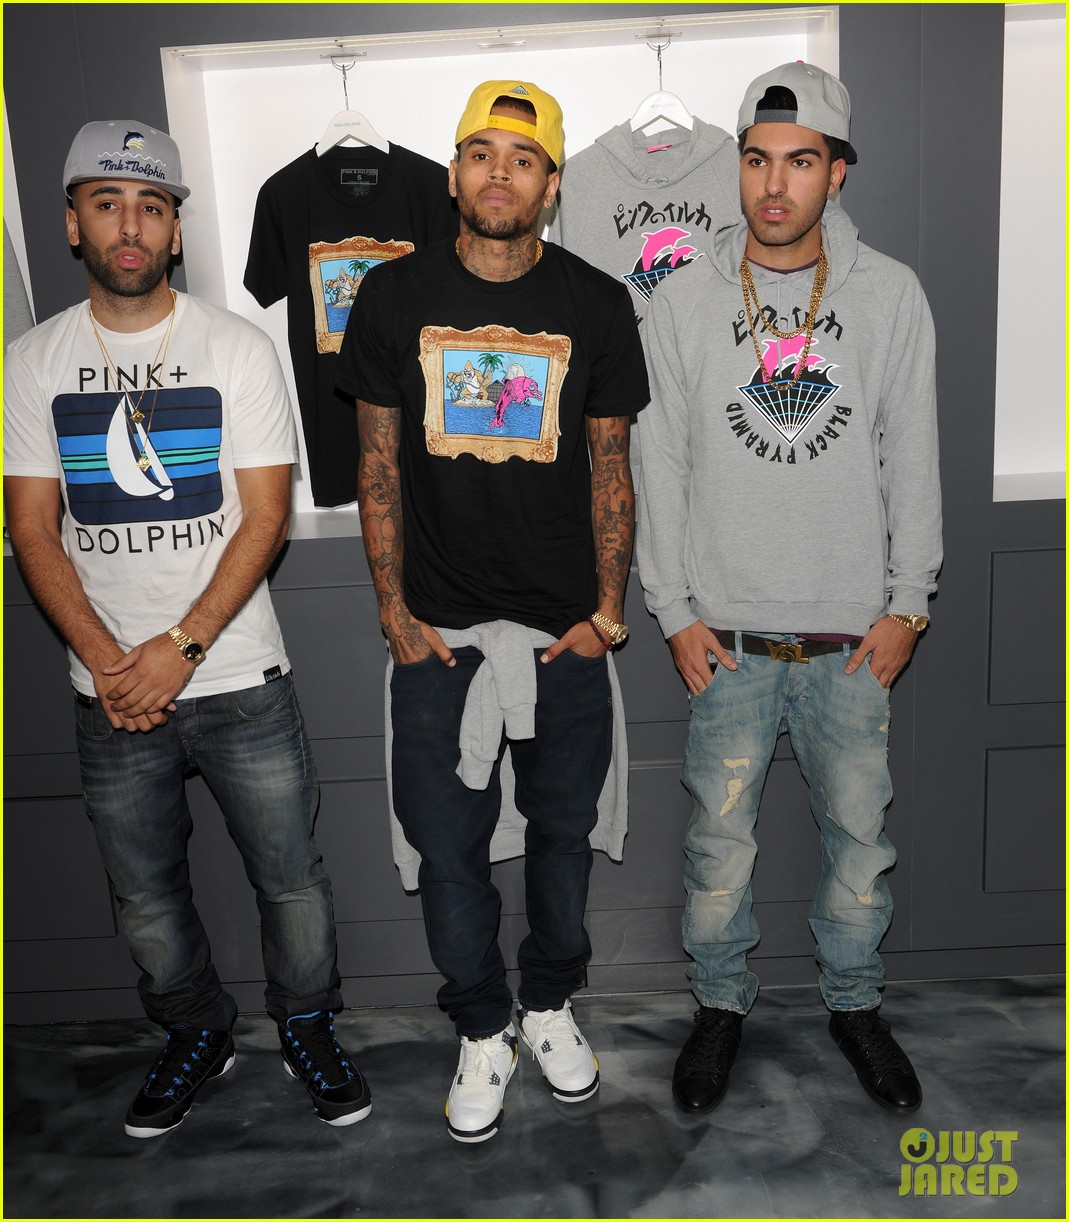 Chris brown pinkdolphin in store meet greet photo 2753501 chris brown pinkdolphin in store meet greet photo 2753501 chris brown karrueche tran pictures just jared kristyandbryce Choice Image